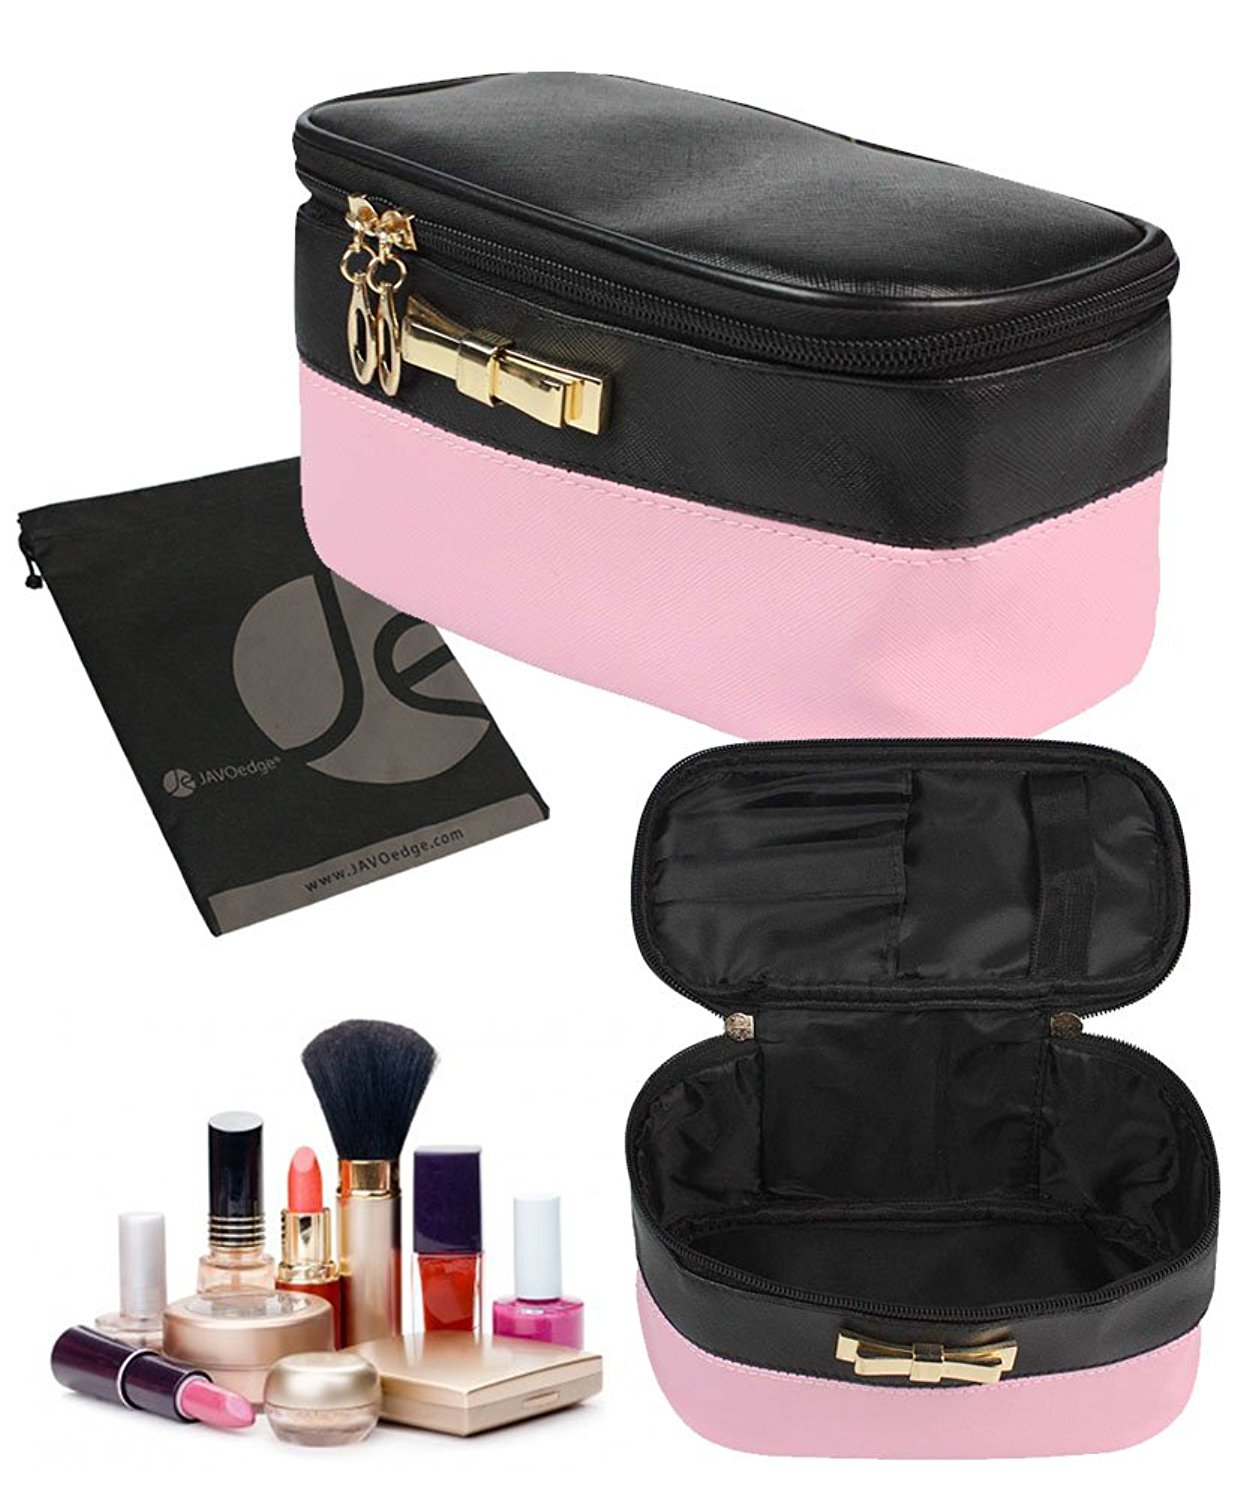 JAVOedge Dual Color Stylish Cosmetic Bag with Double Zipper with Brush Holder